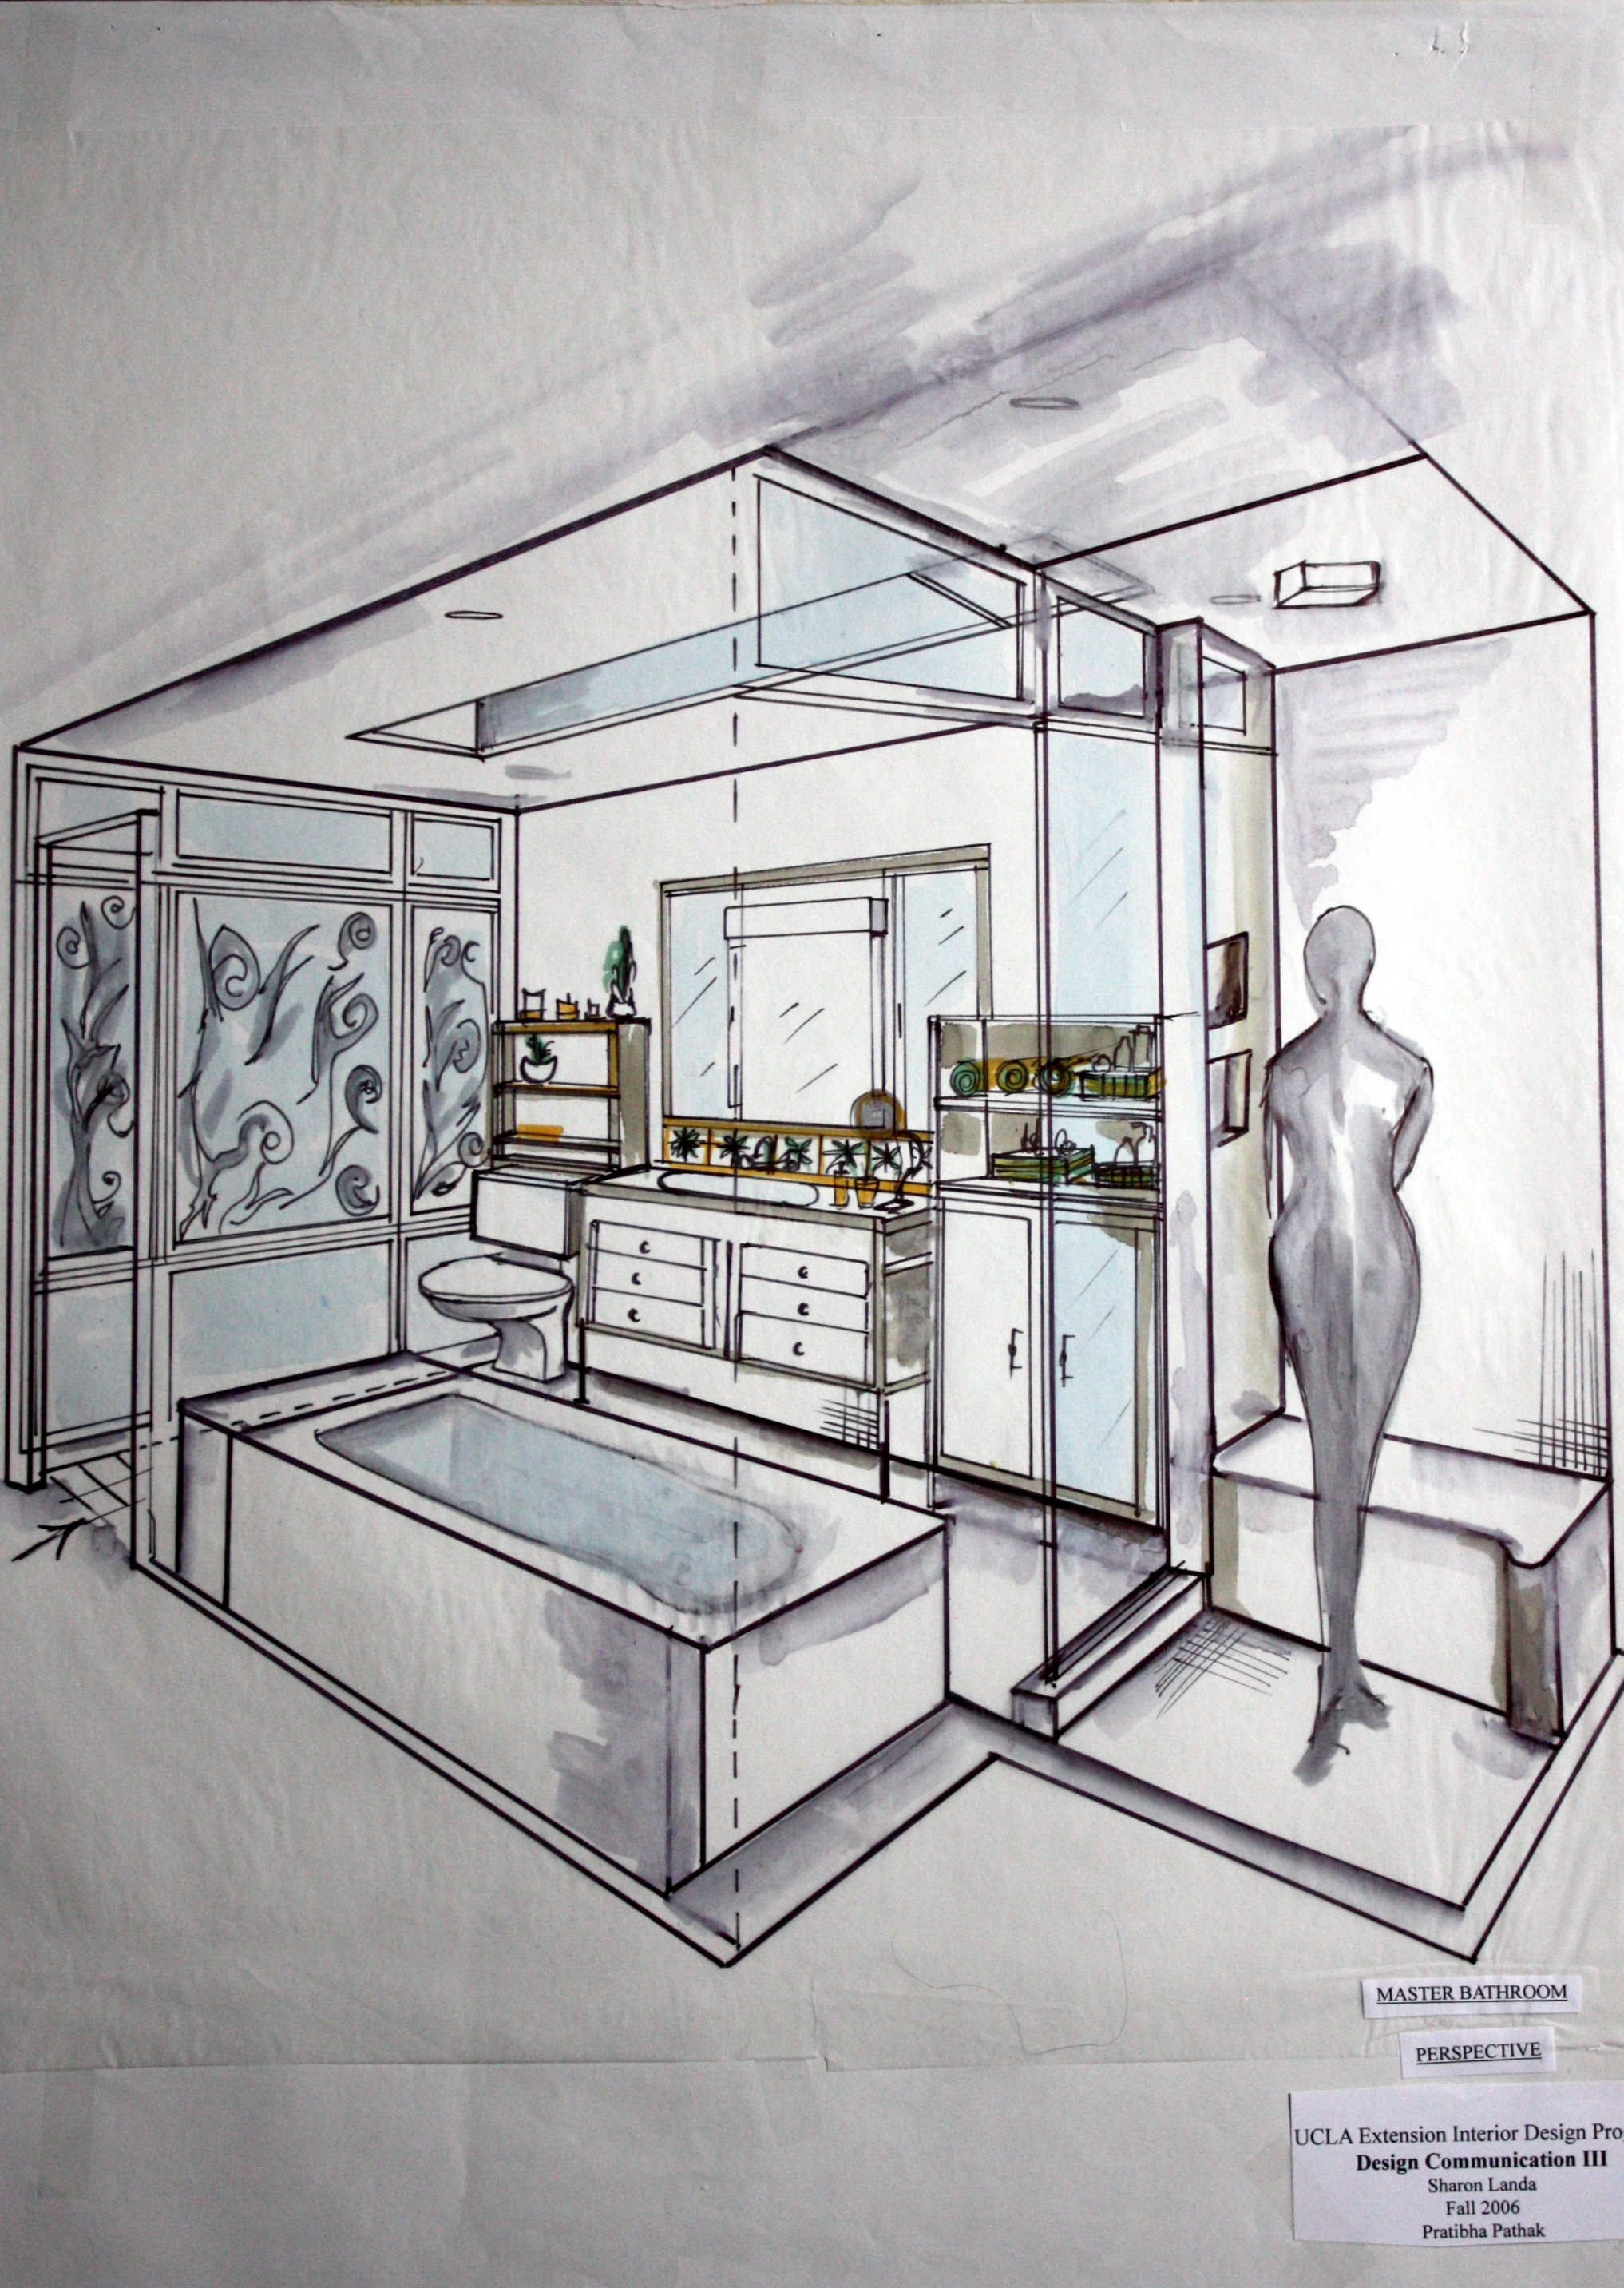 Interior Design Projects Hand Drafting, Rendering, Perspective Drawing.